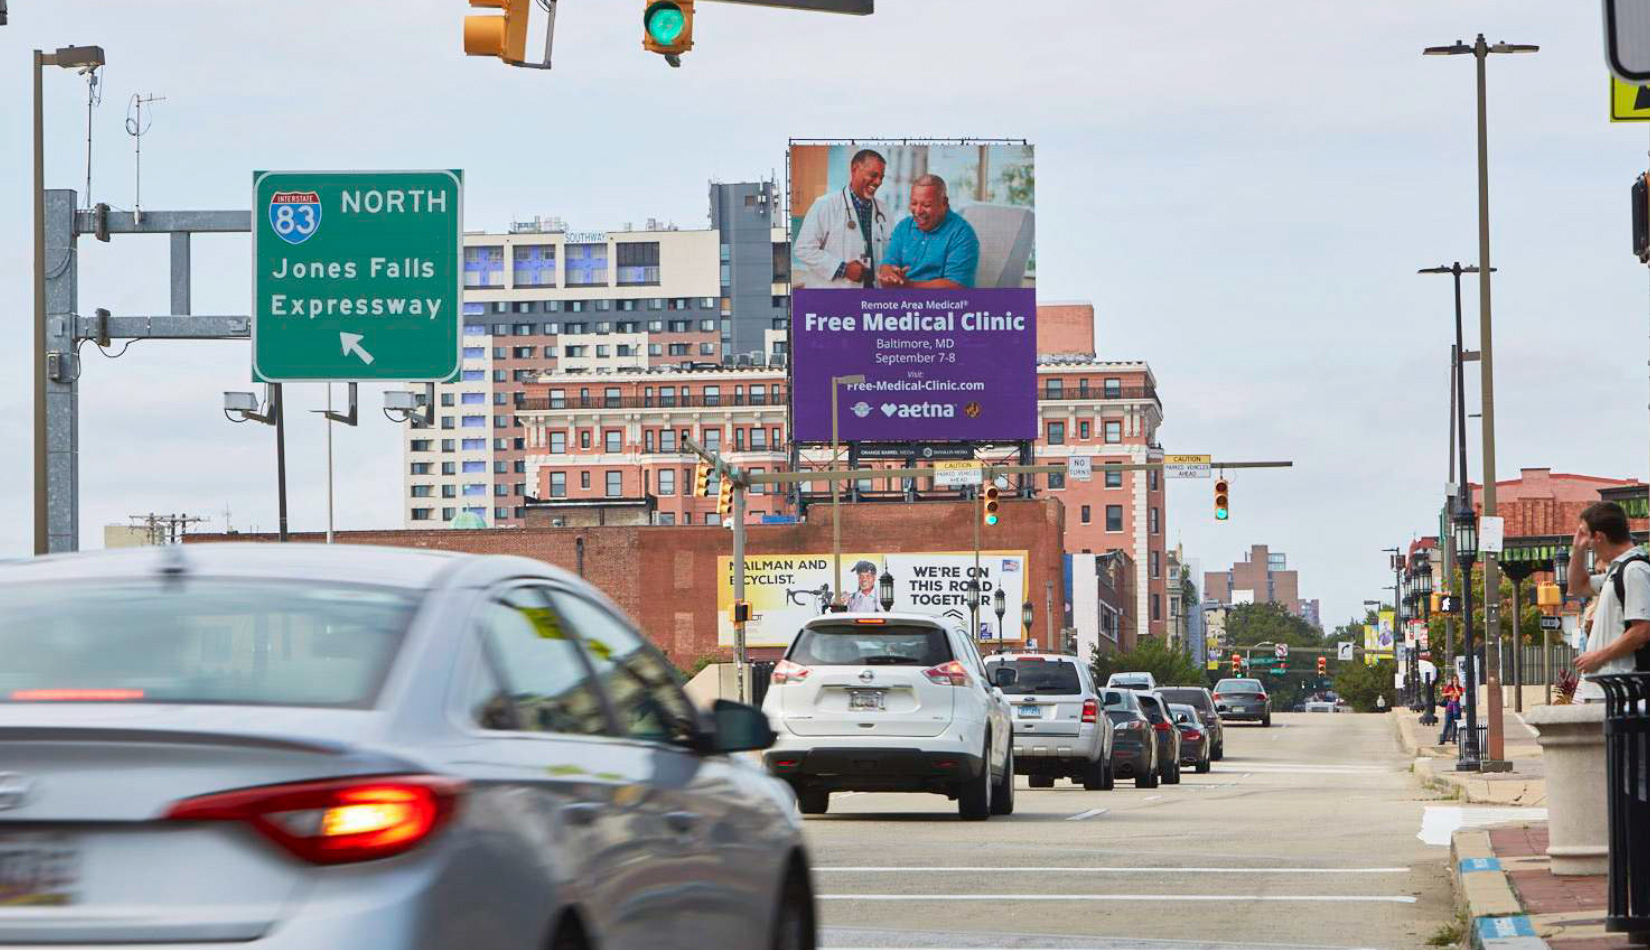 Free medical clinic billboard in downtown Baltimore